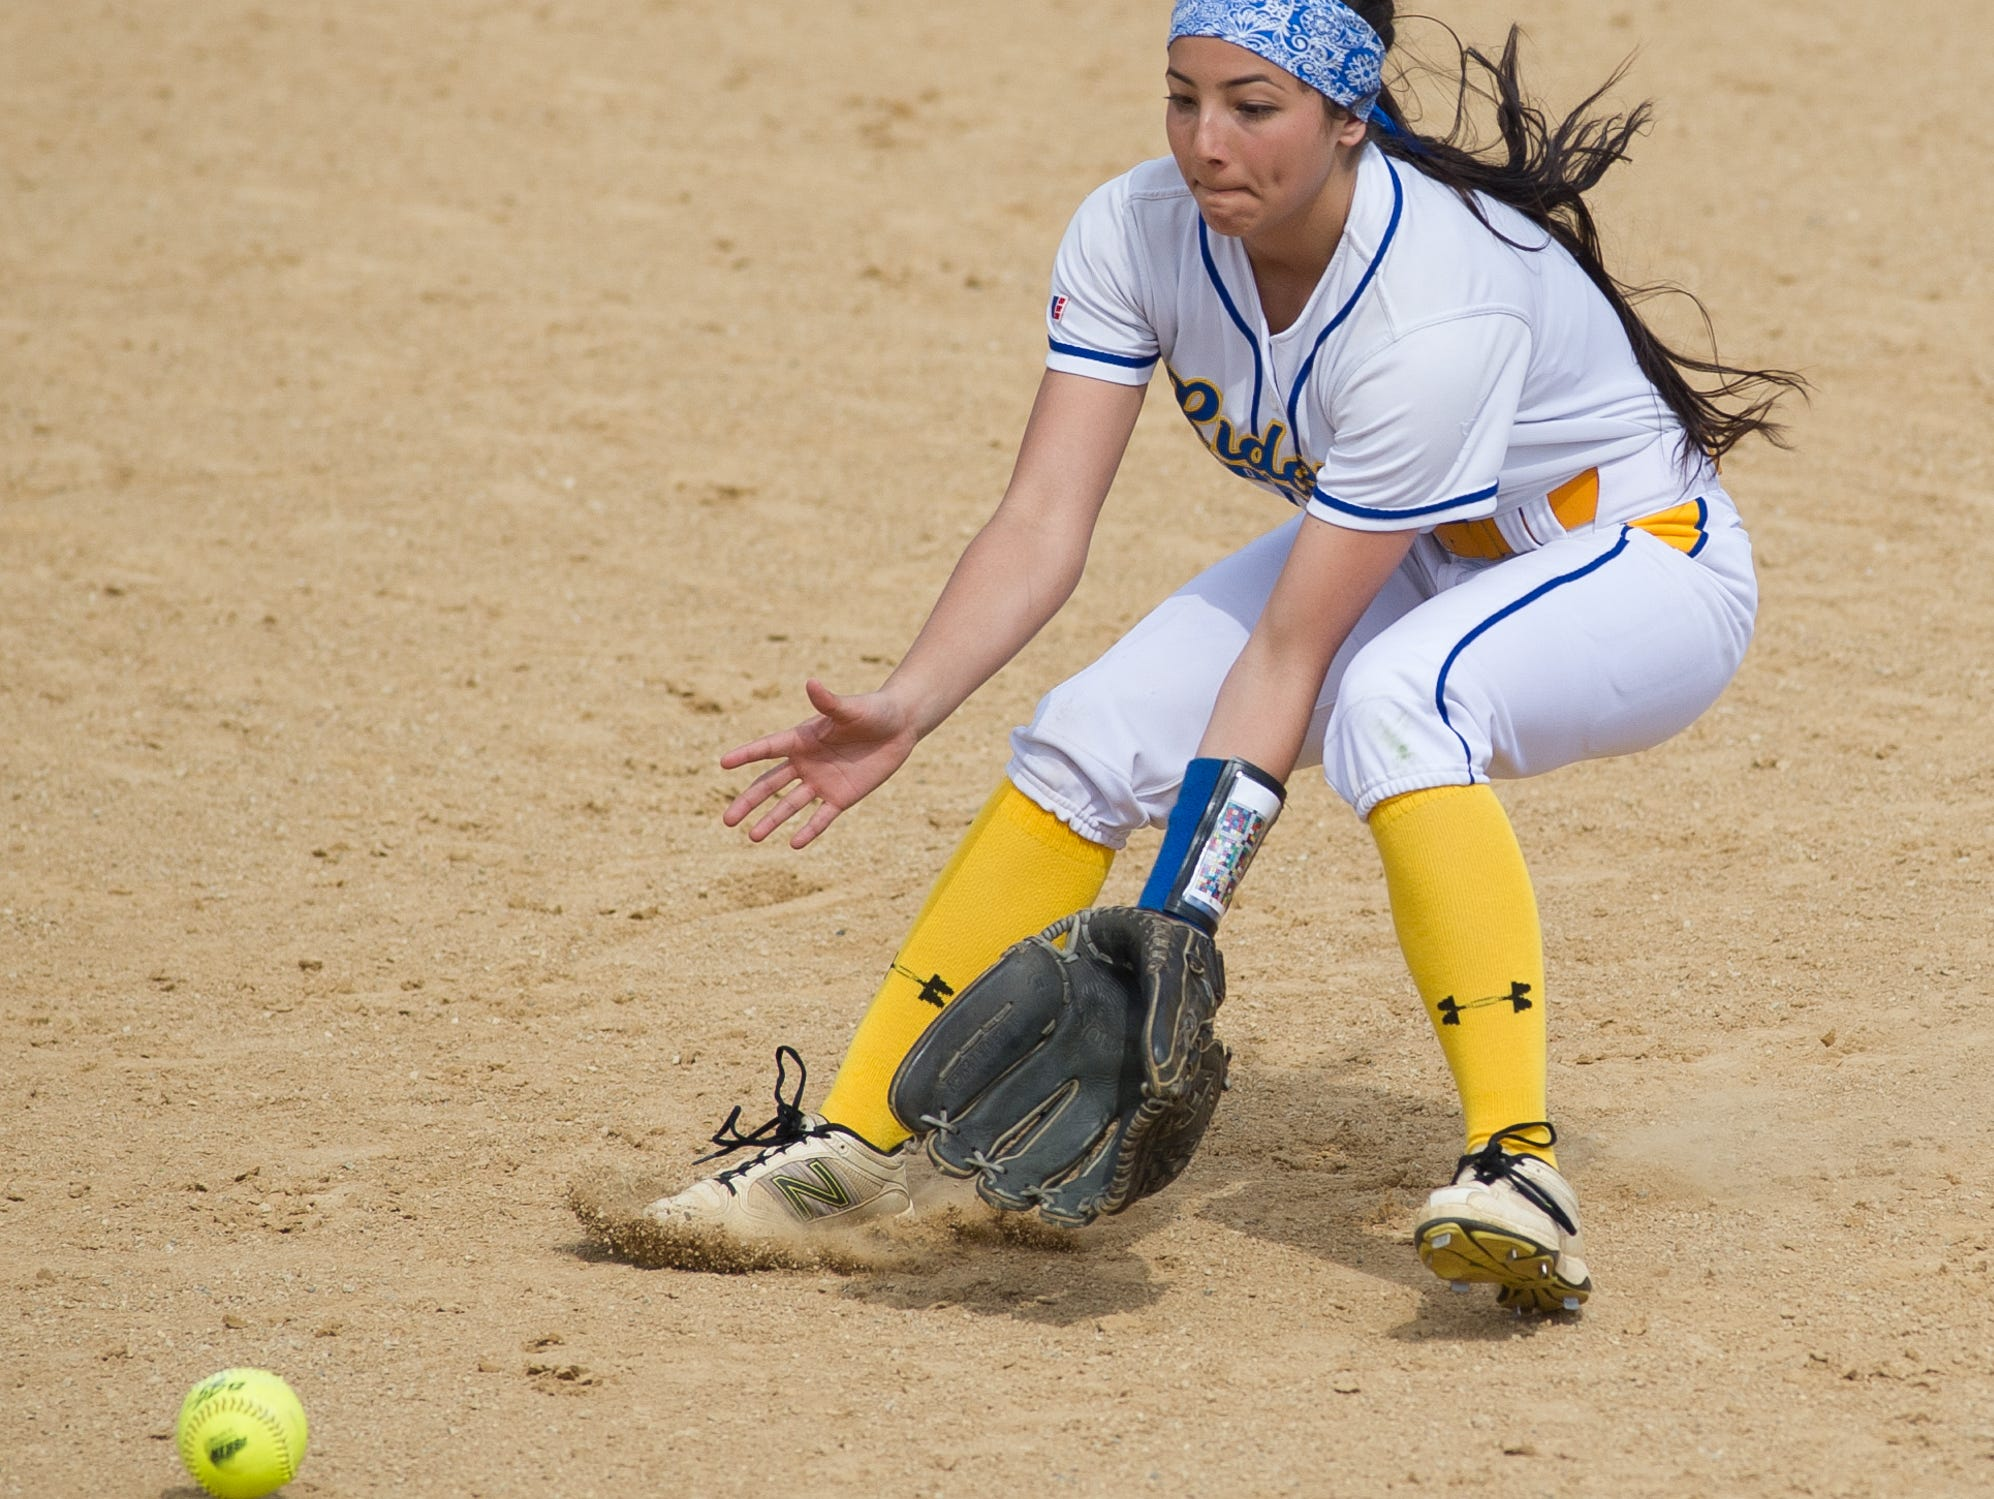 Caesar Rodney's Kendall Lewis (2) catches a ground ball in the 3rd inning against Concord.